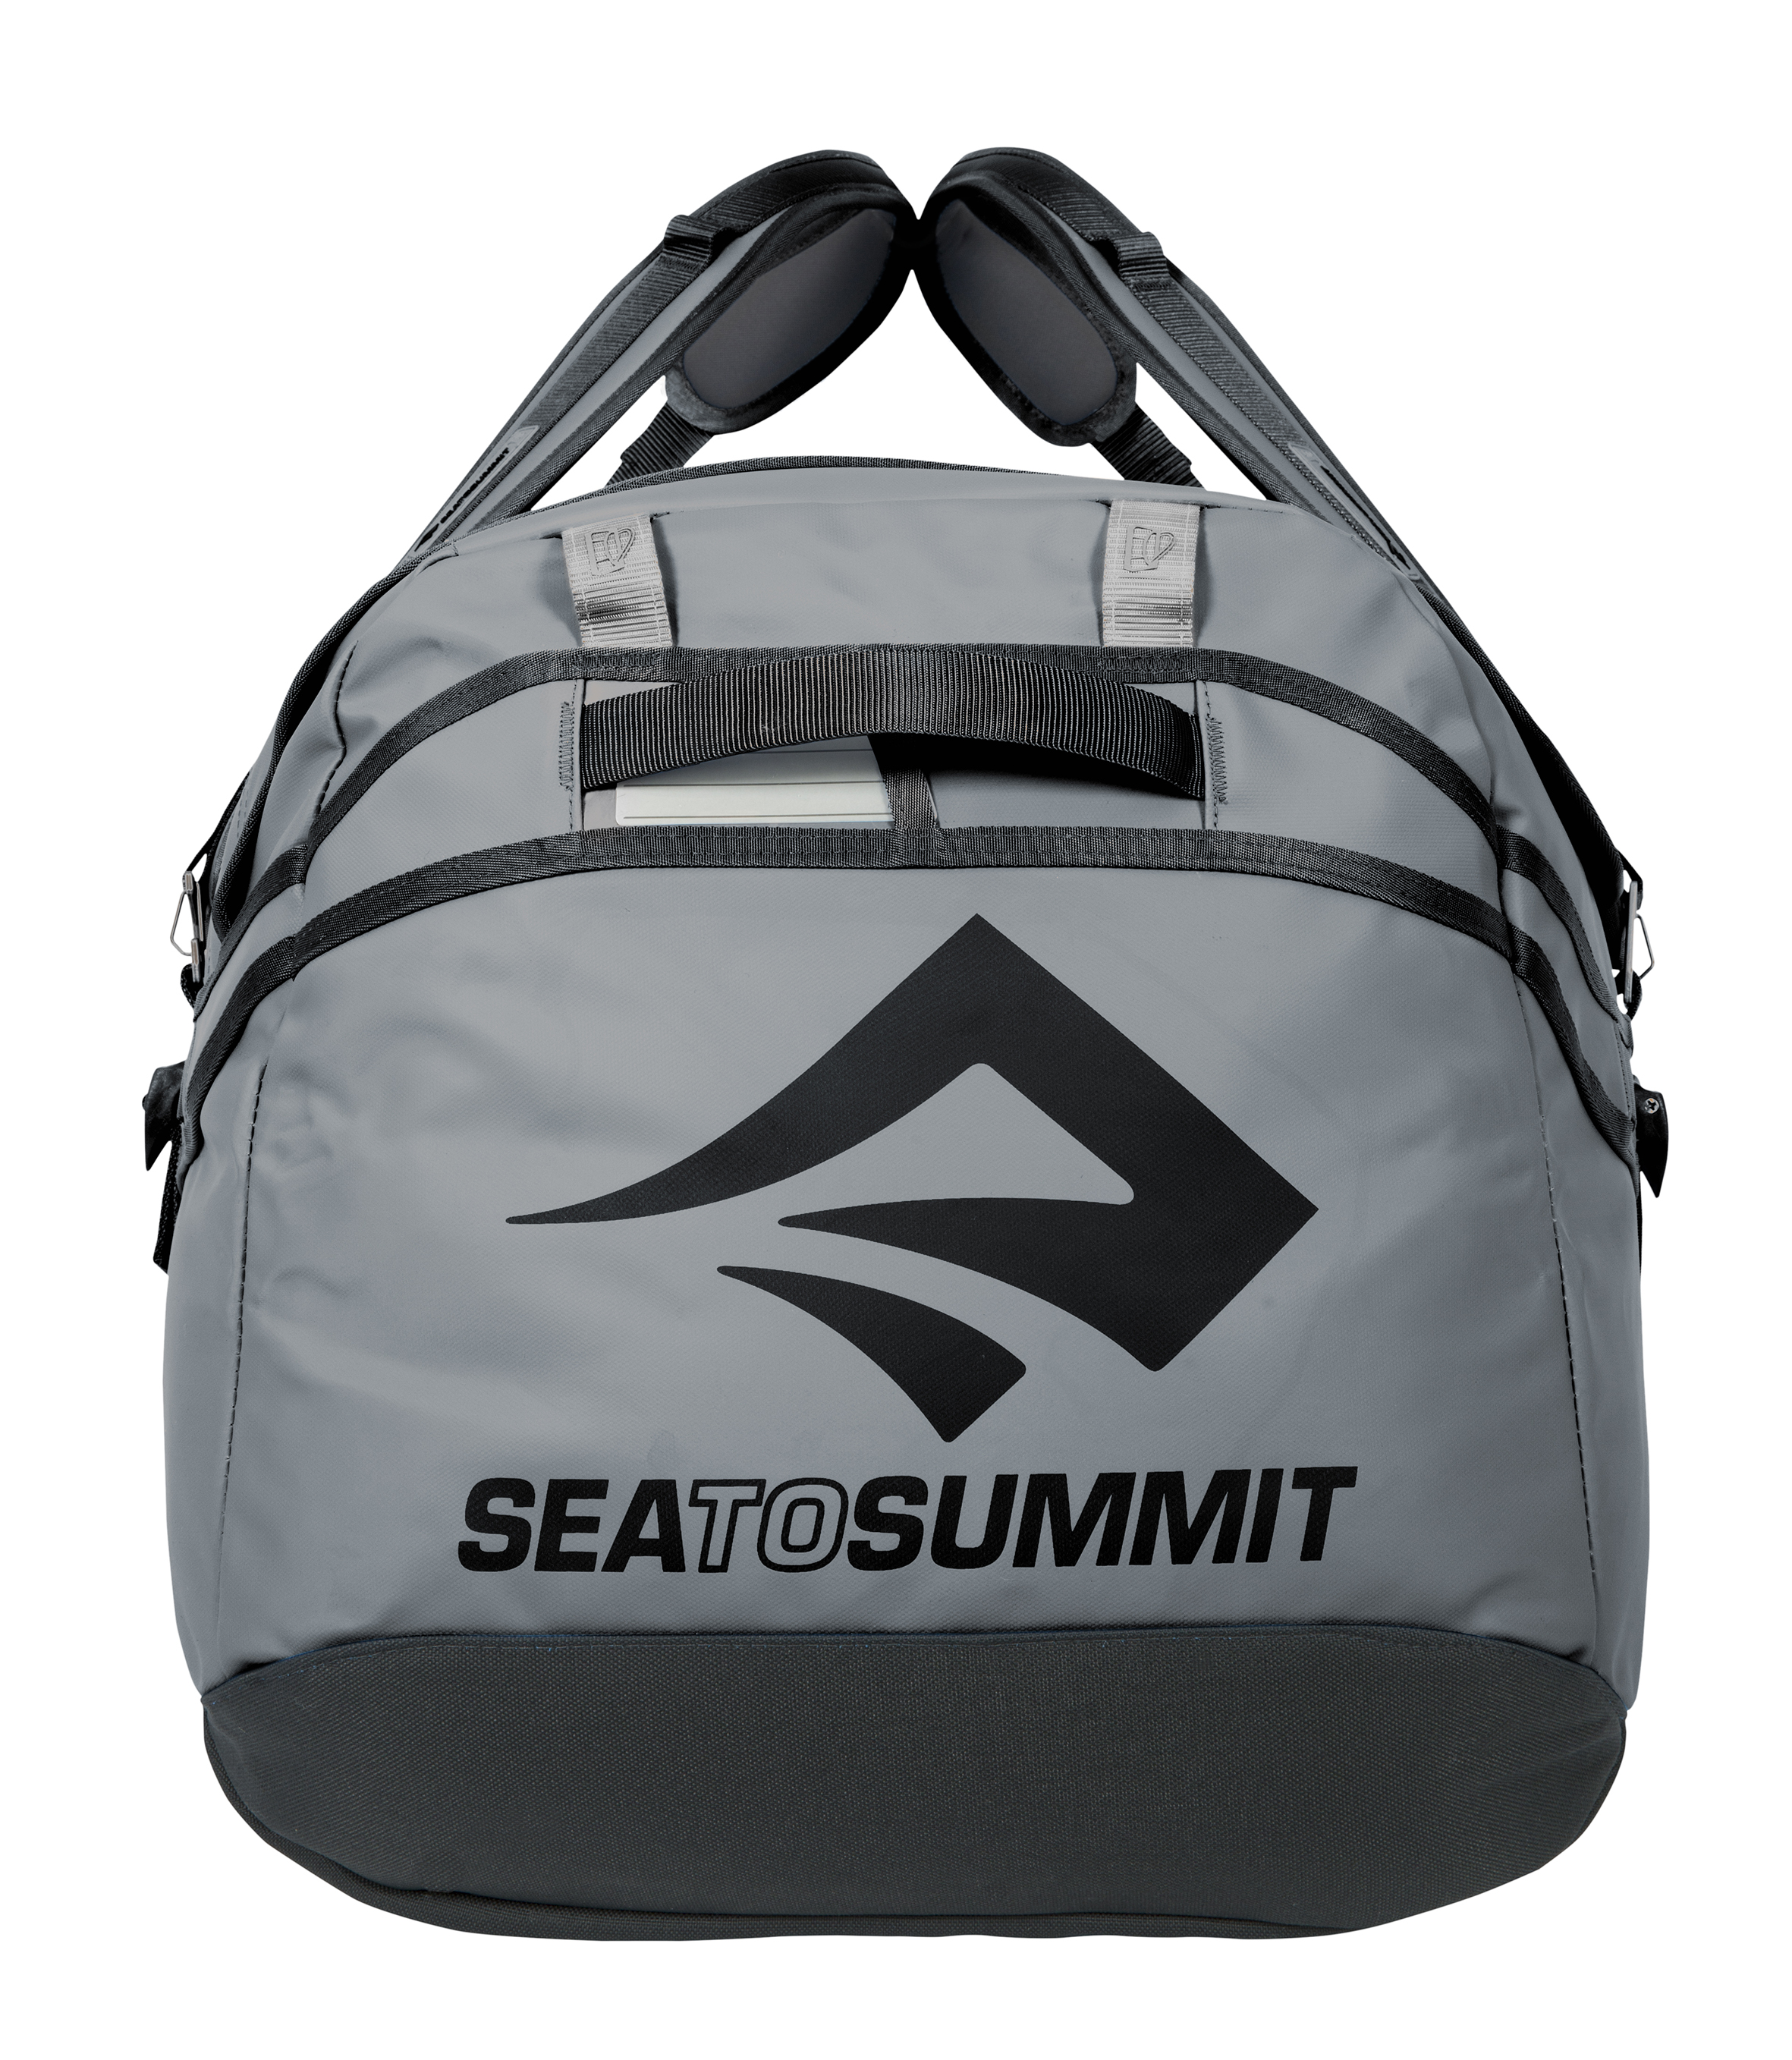 Сумка-баул Nomad Duffle 130L Sea To Summit — фото 3